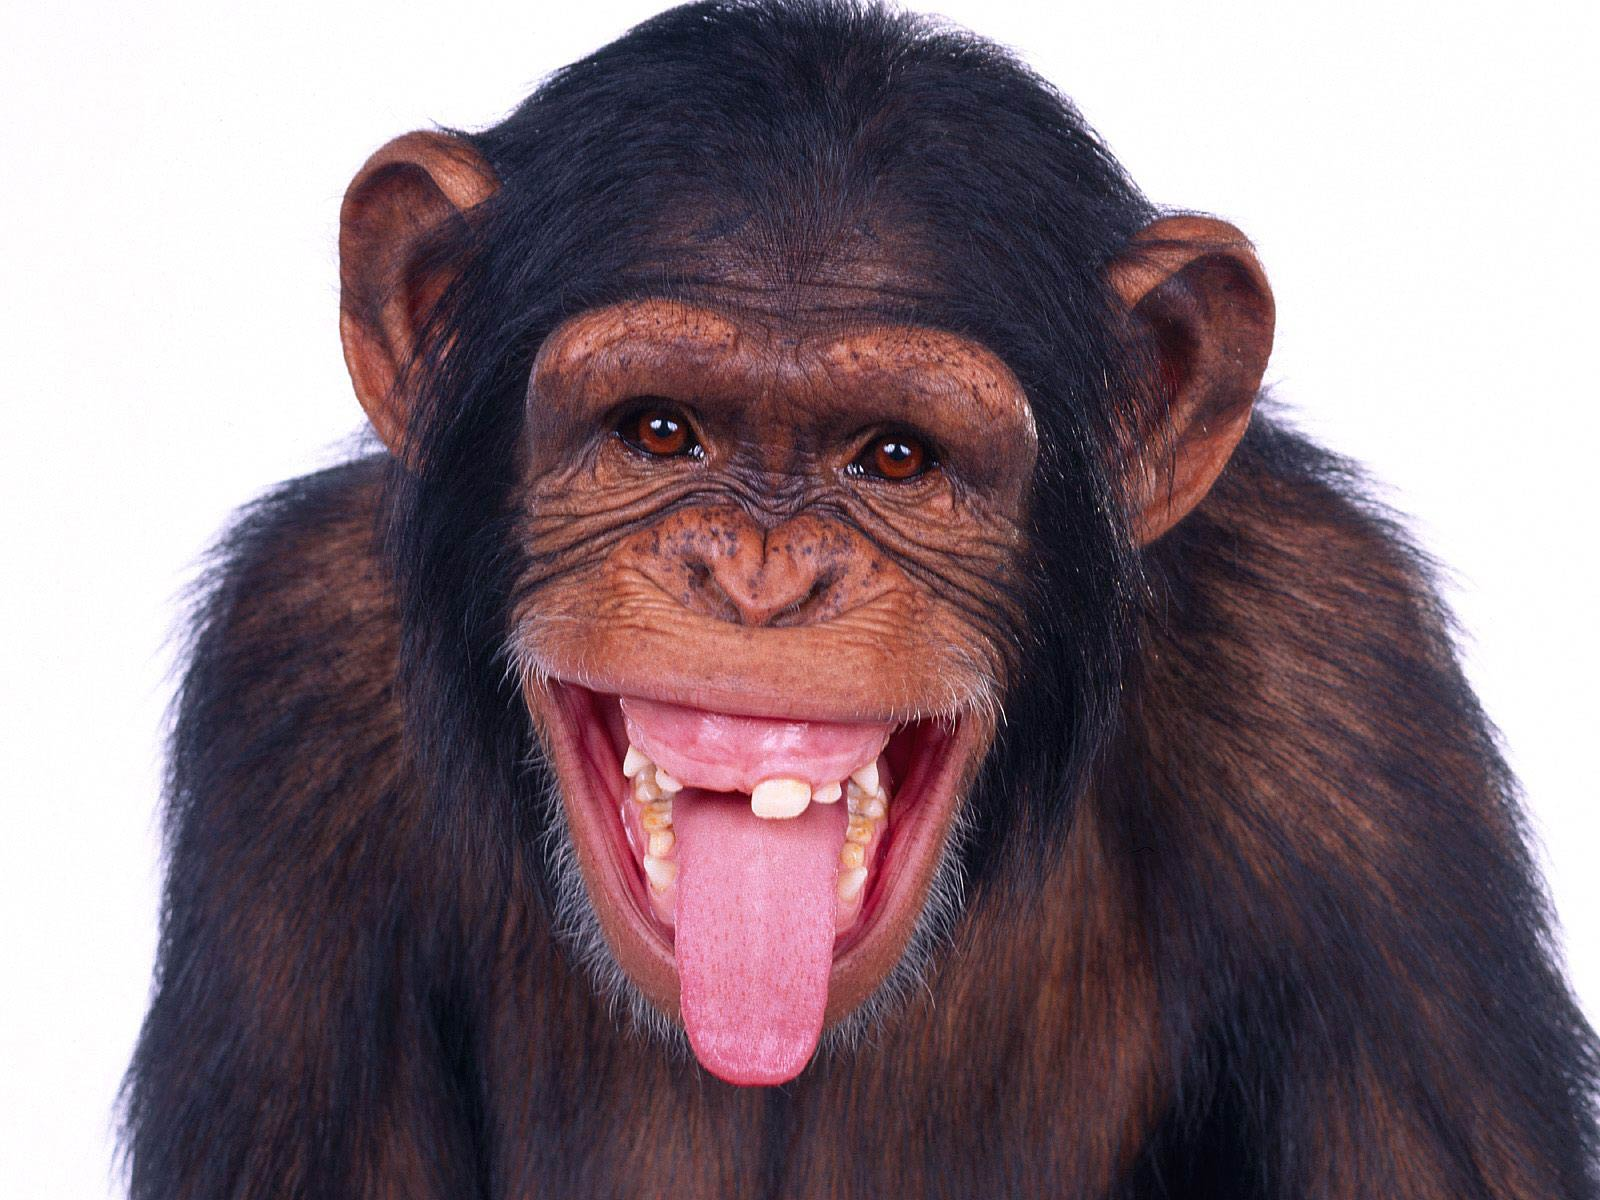 free Chimpanzee wallpaper wallpapers and background